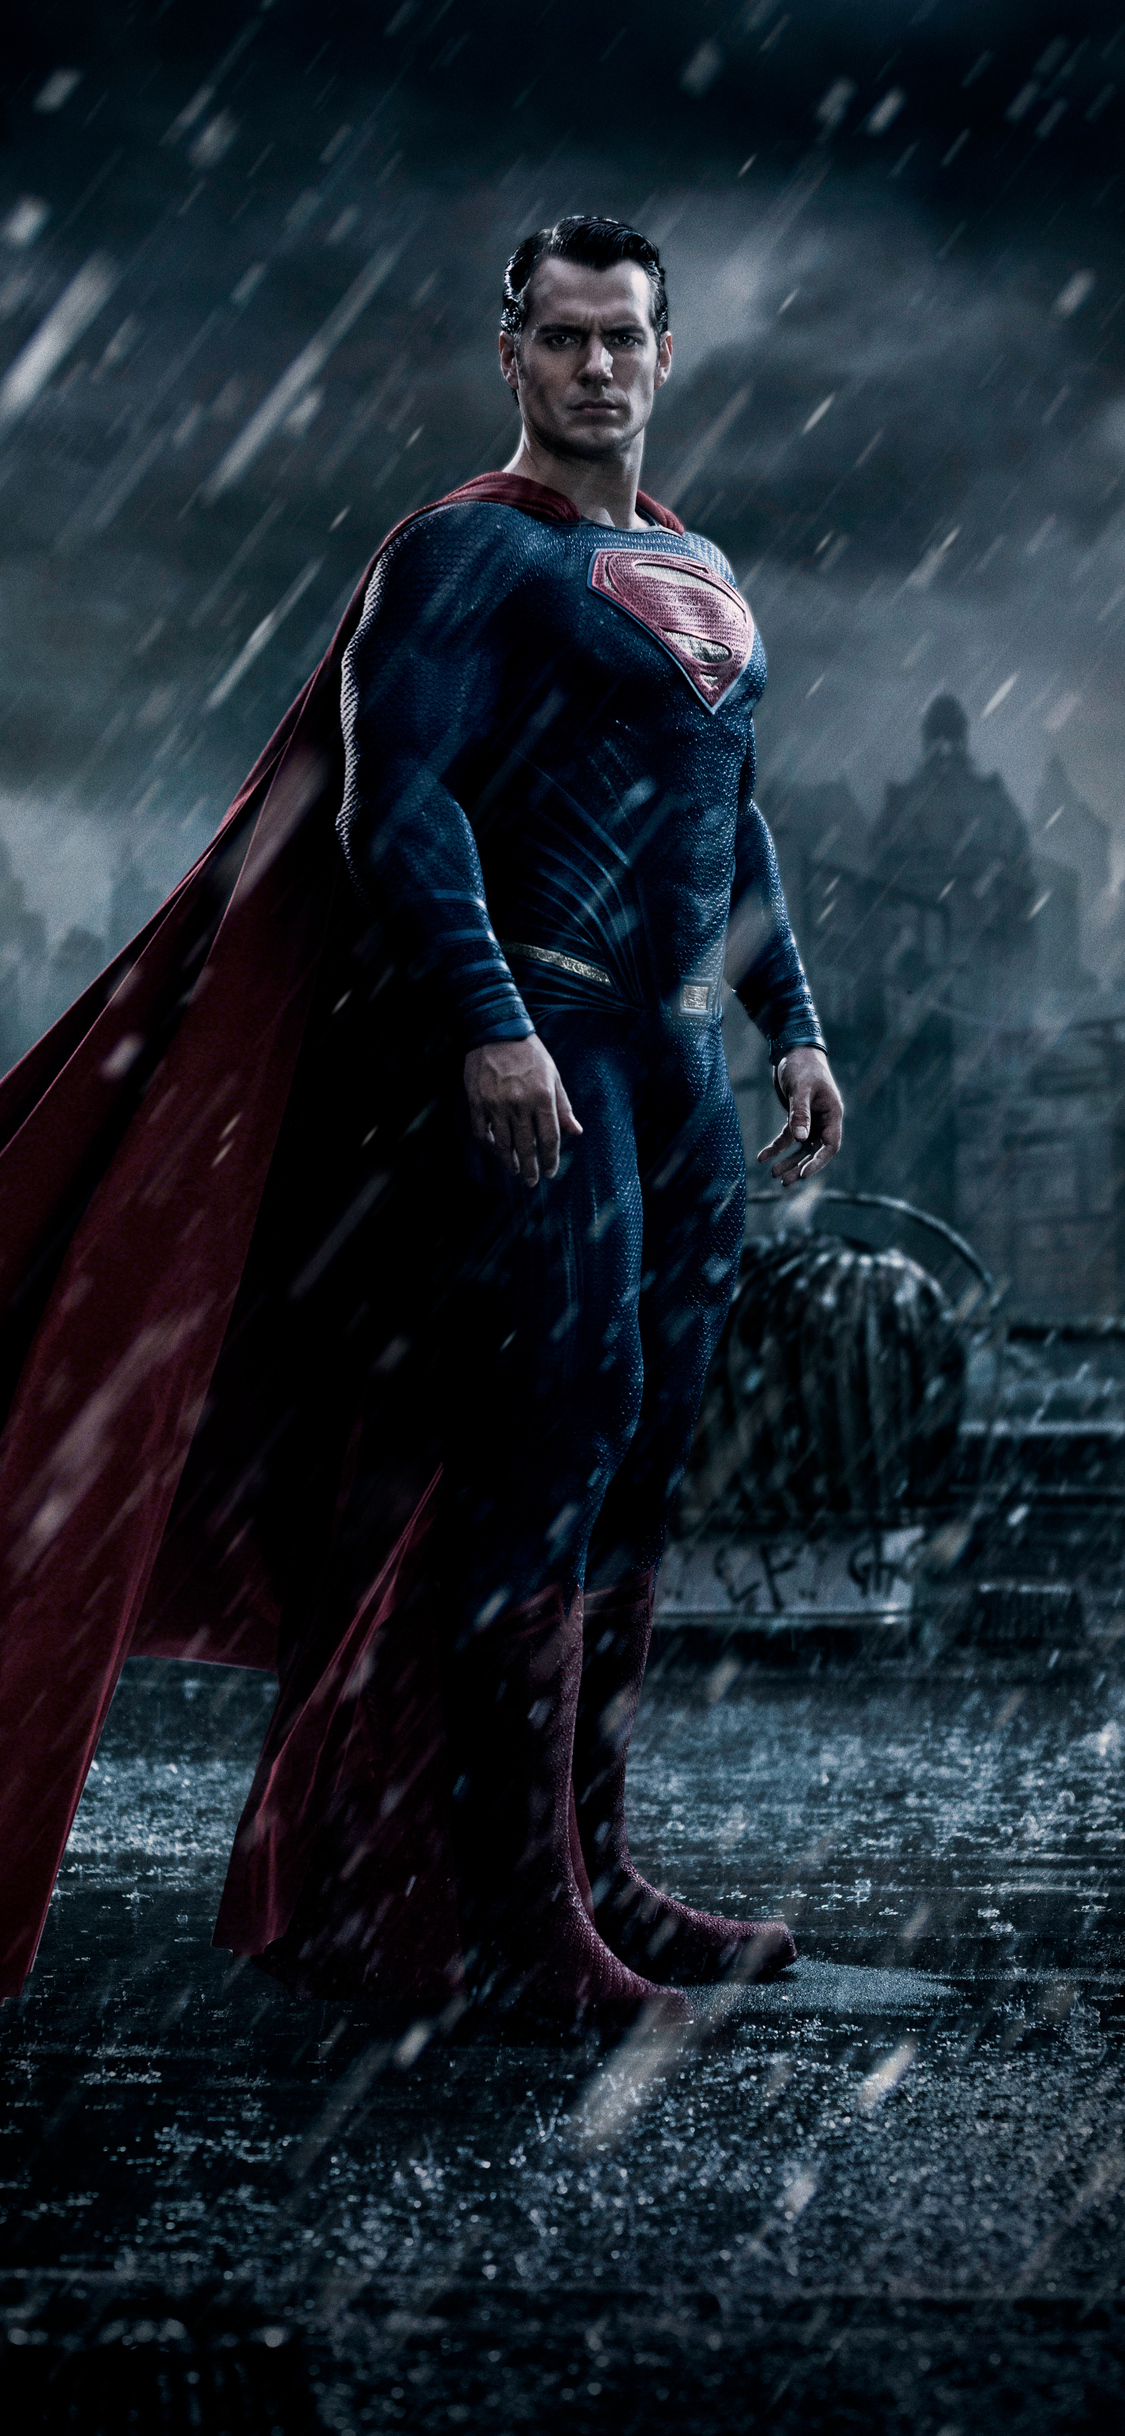 1125x2436 Superman Henry Cavill In Man Of Steel Iphone Xs Iphone